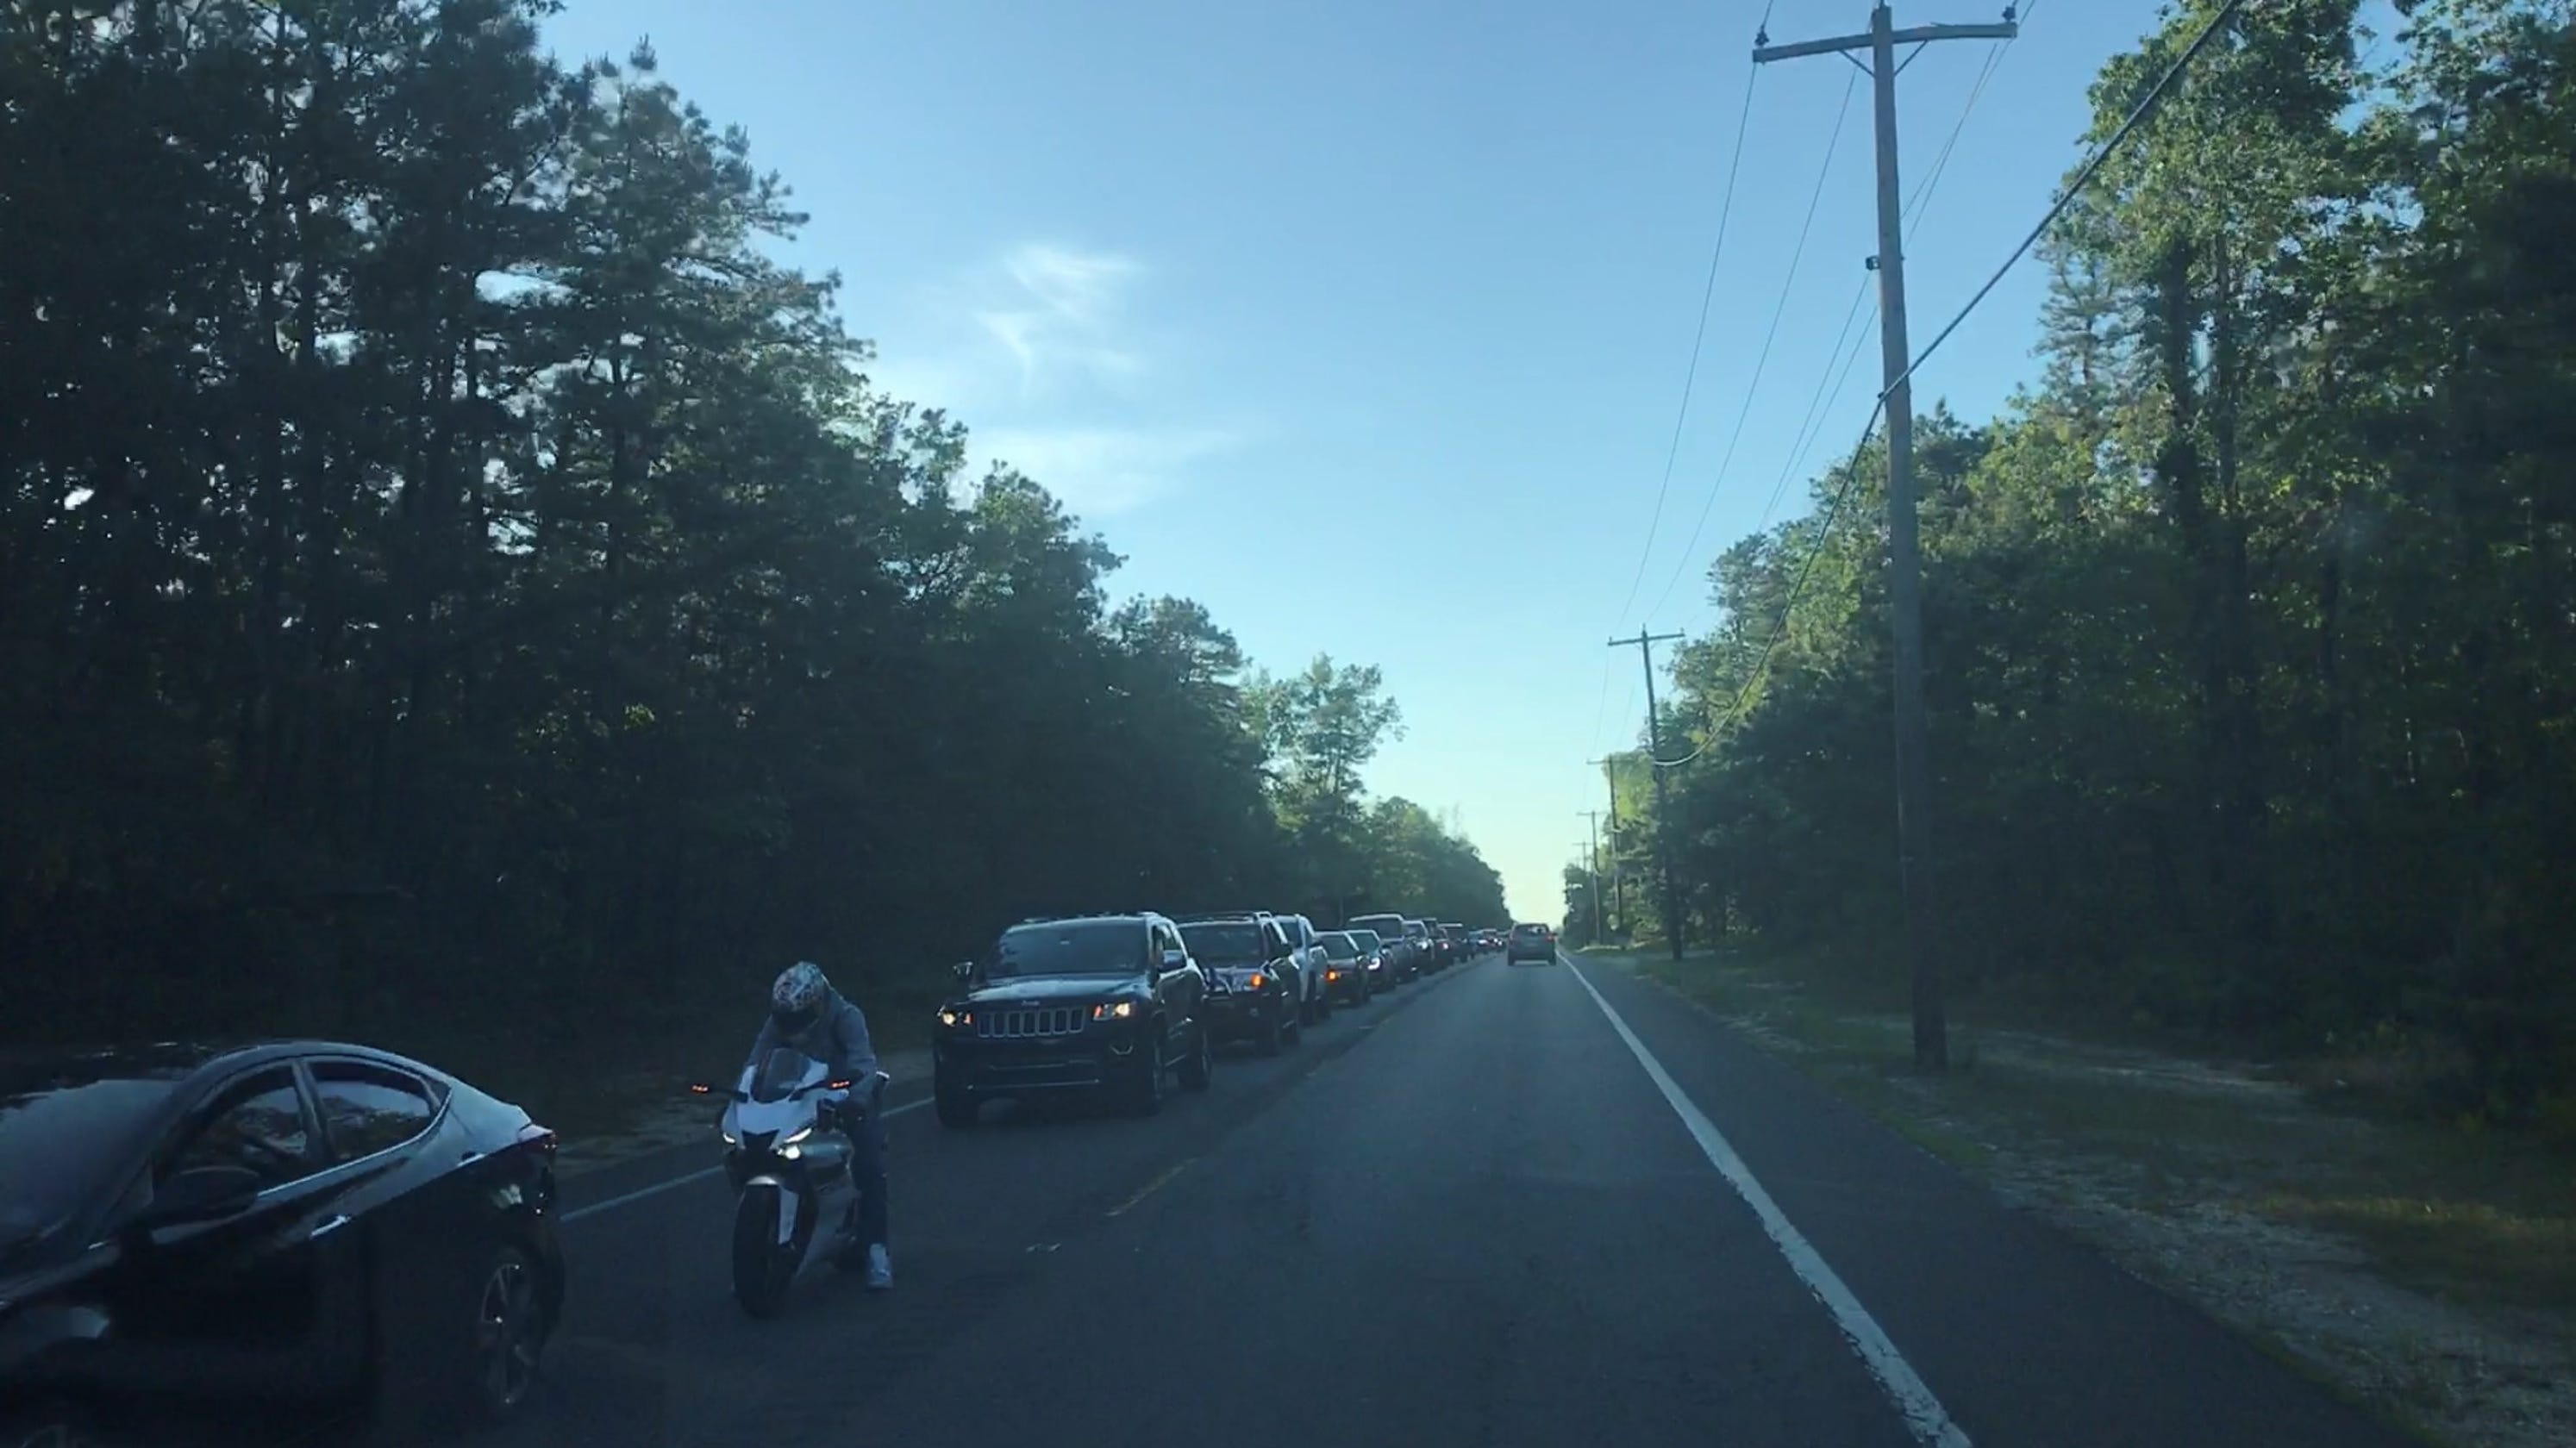 Motorcyclist hurt in crash with deer on Route 539 in Plumsted